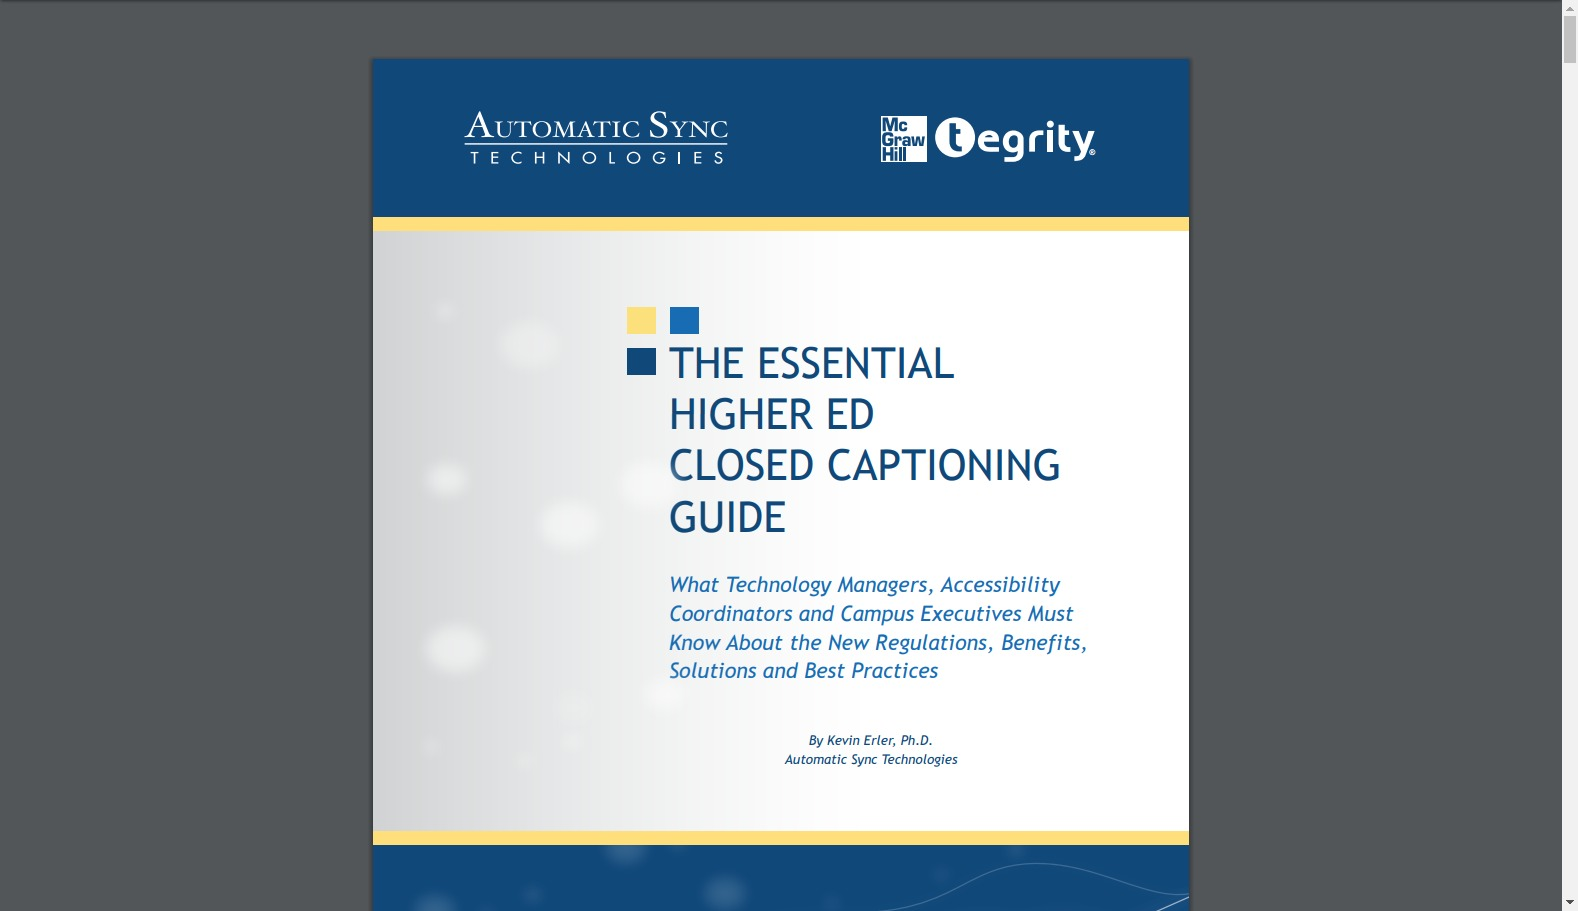 The Essential Higher Ed Closed Captioning Guide